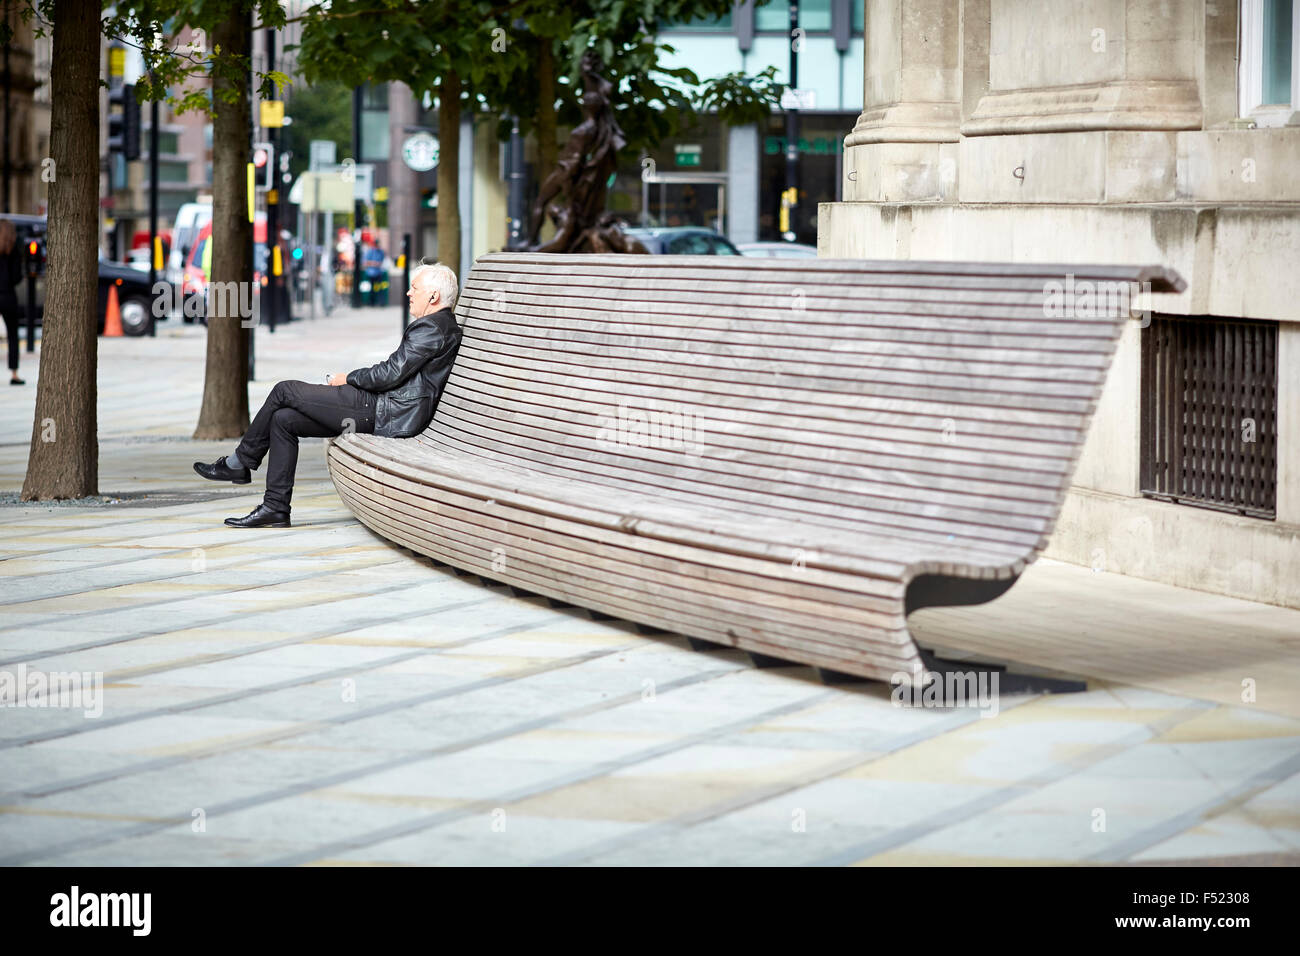 Peachy Modern Public Seating Benches Outside Manchester Central Forskolin Free Trial Chair Design Images Forskolin Free Trialorg